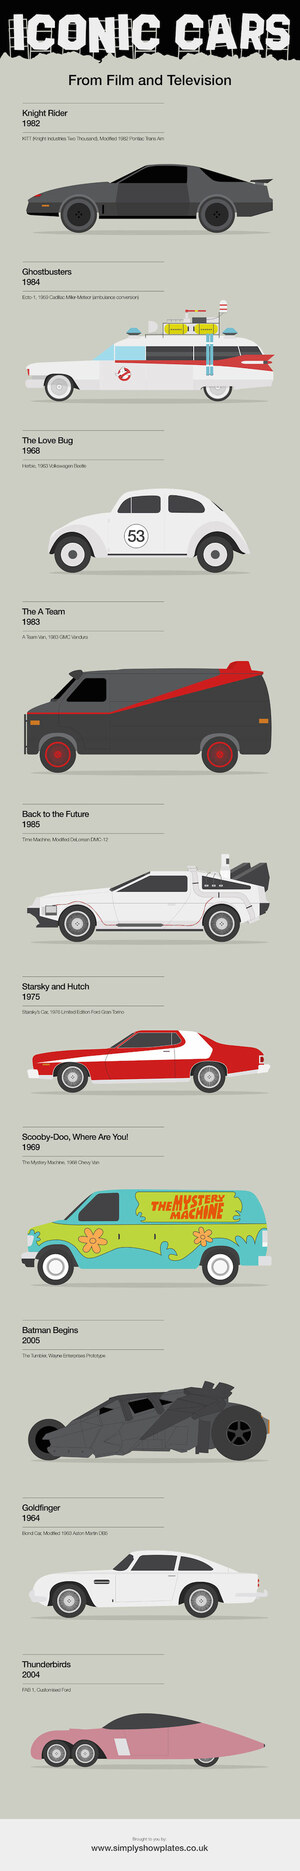 ICONIC-CARS-FINAL